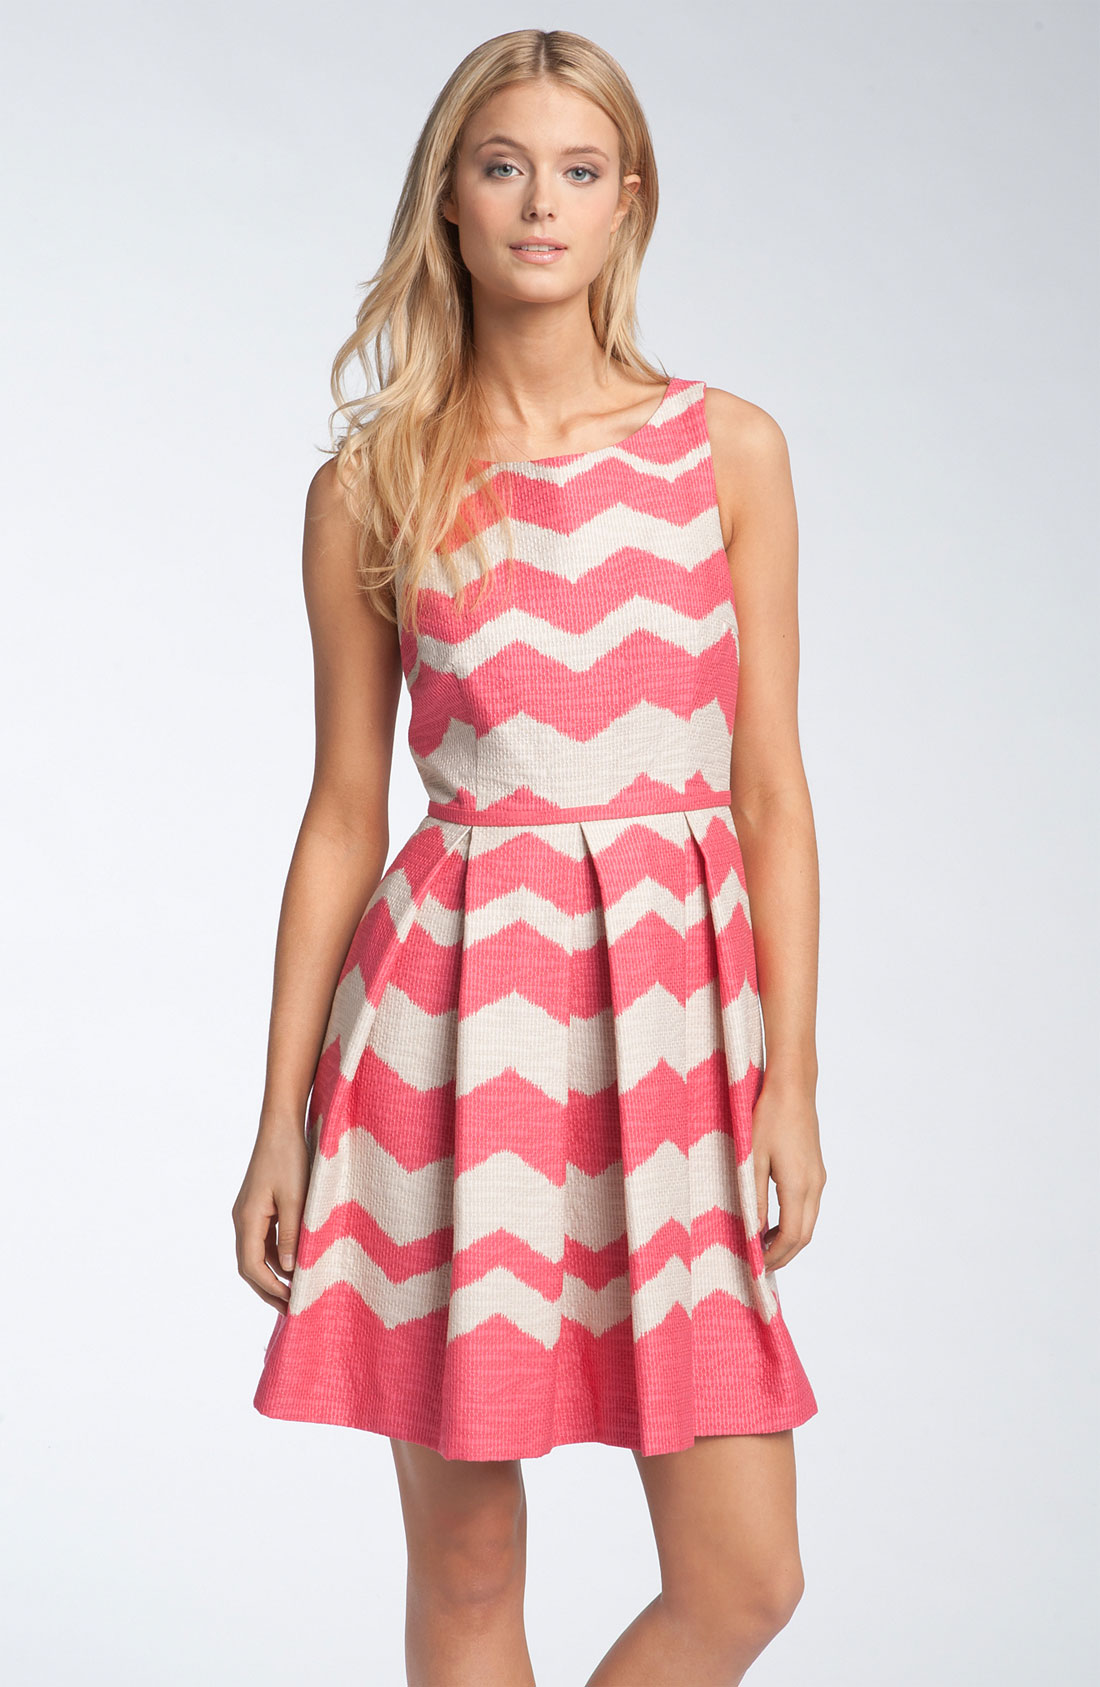 Taylor Dresses Zigzag Fit Flare Dress In Multicolor Tulip